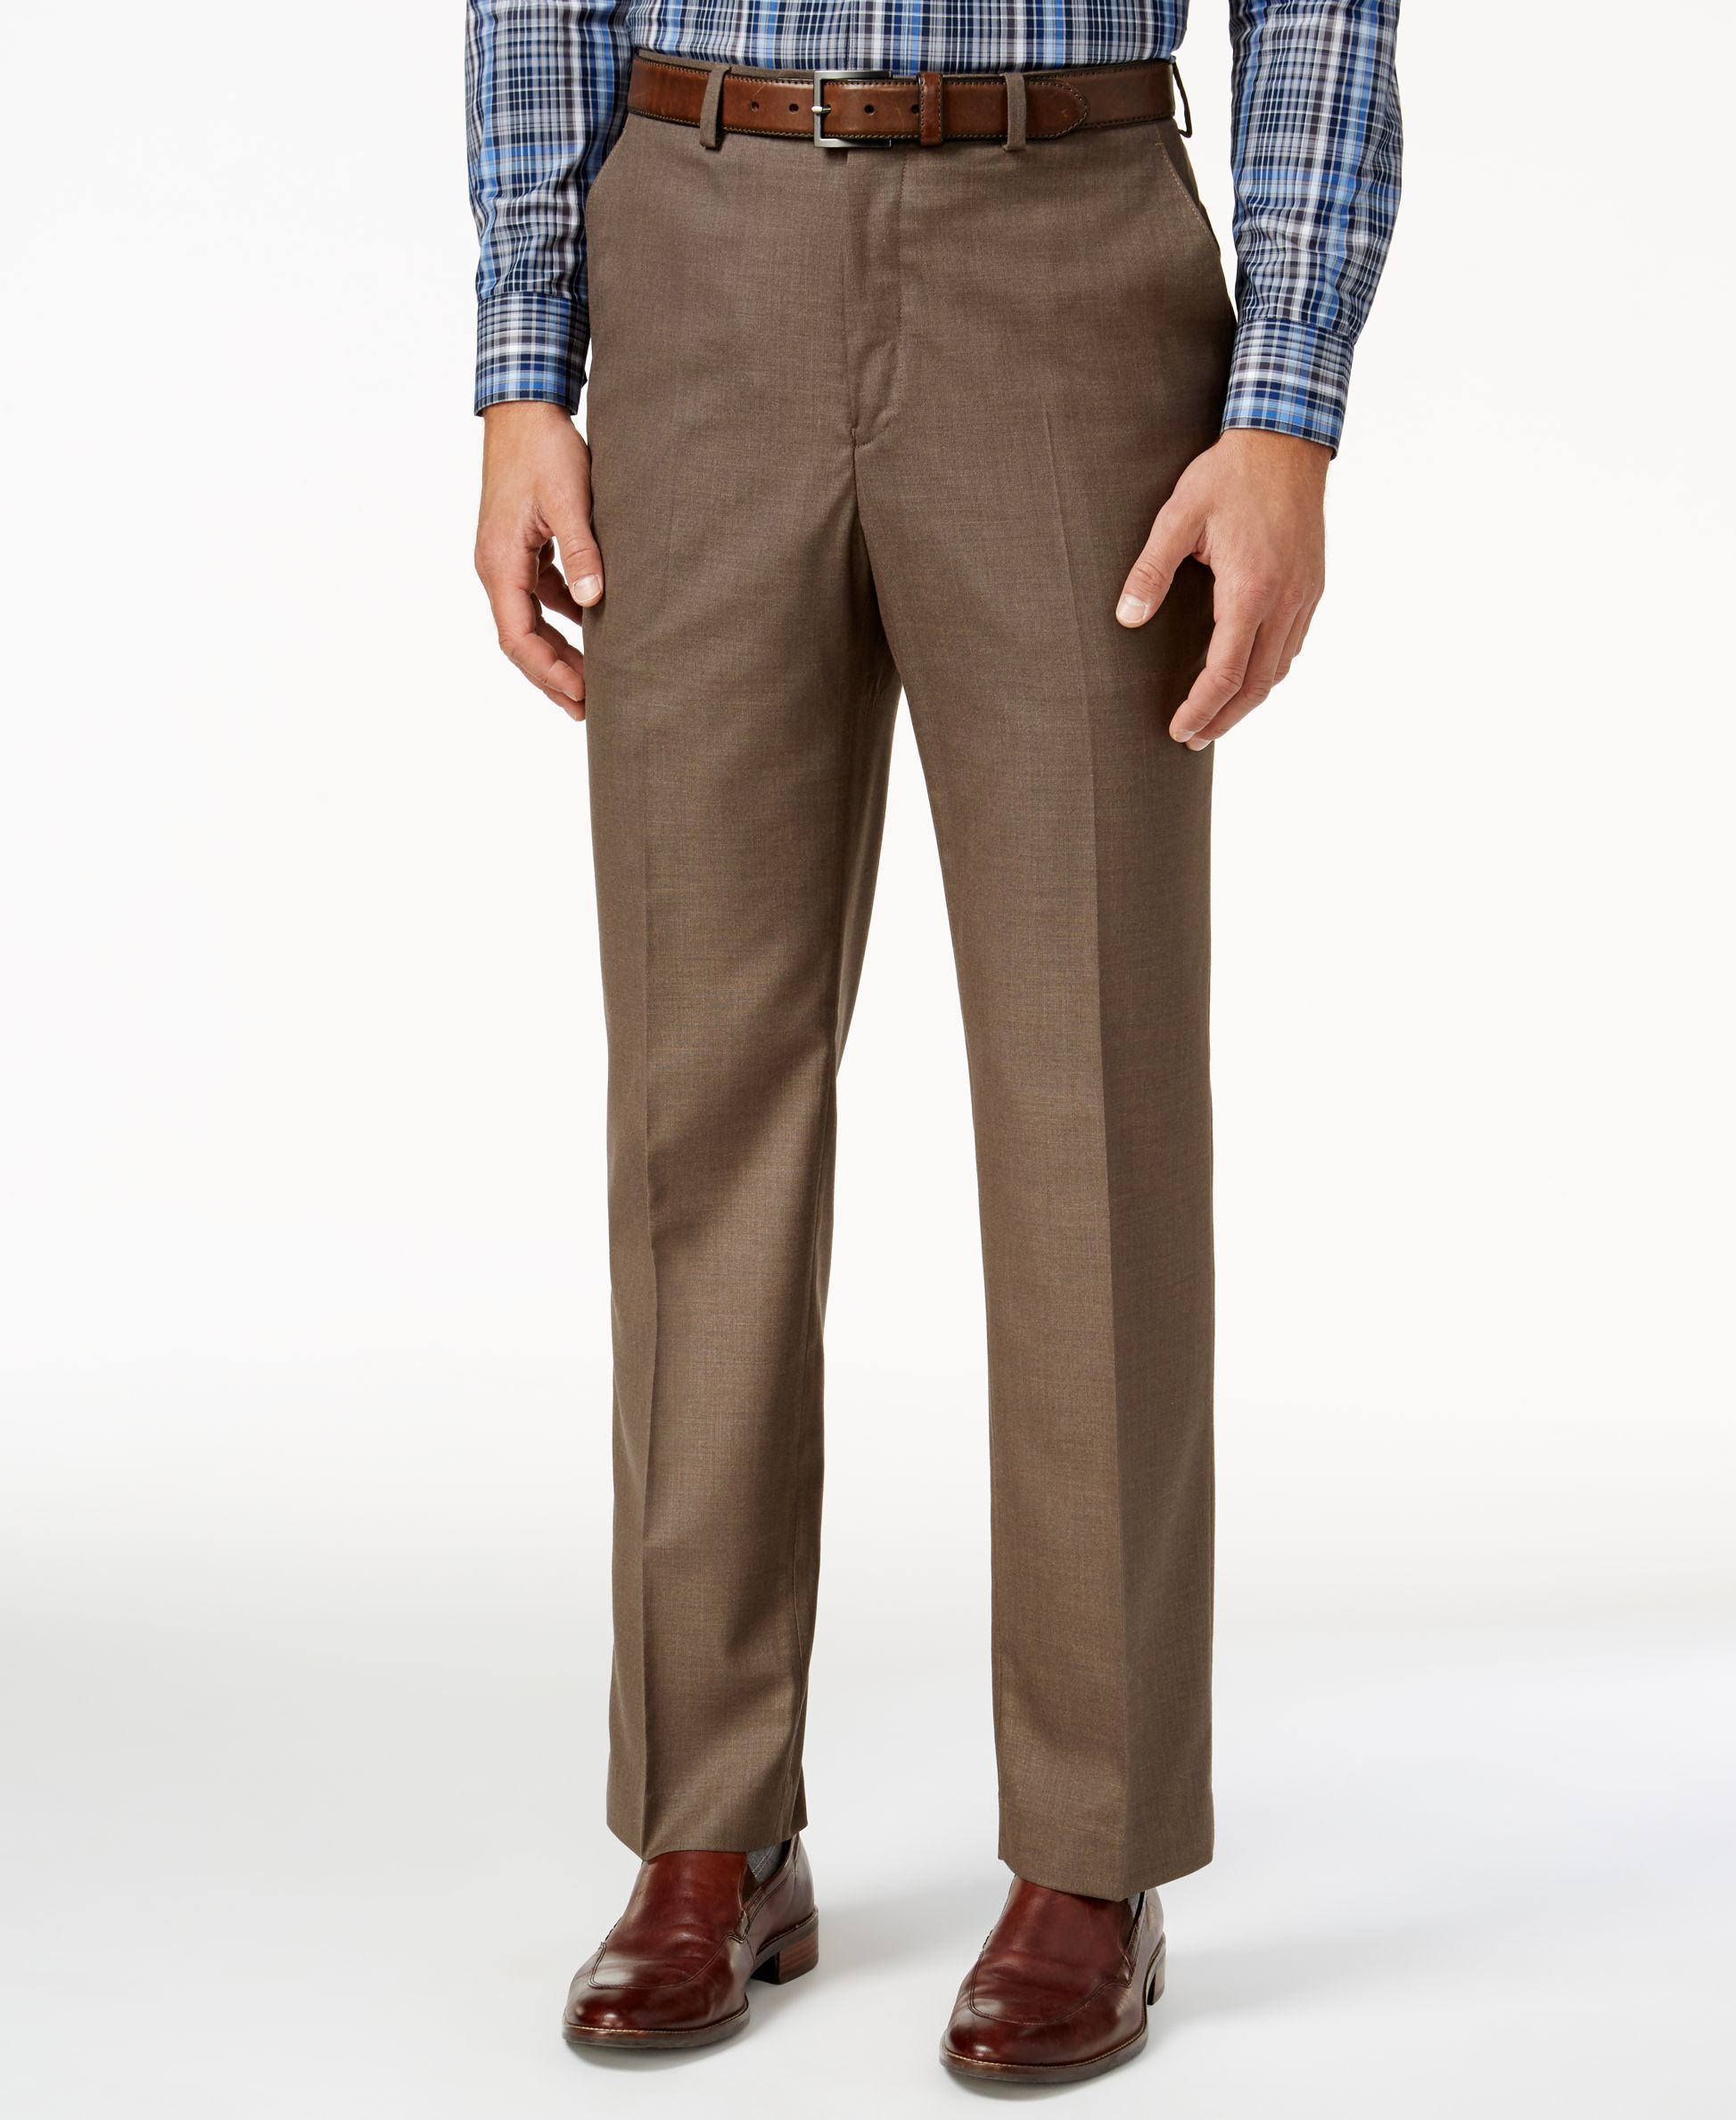 Joseph & Feiss Gold Classic Fit Dress Pants, Brown